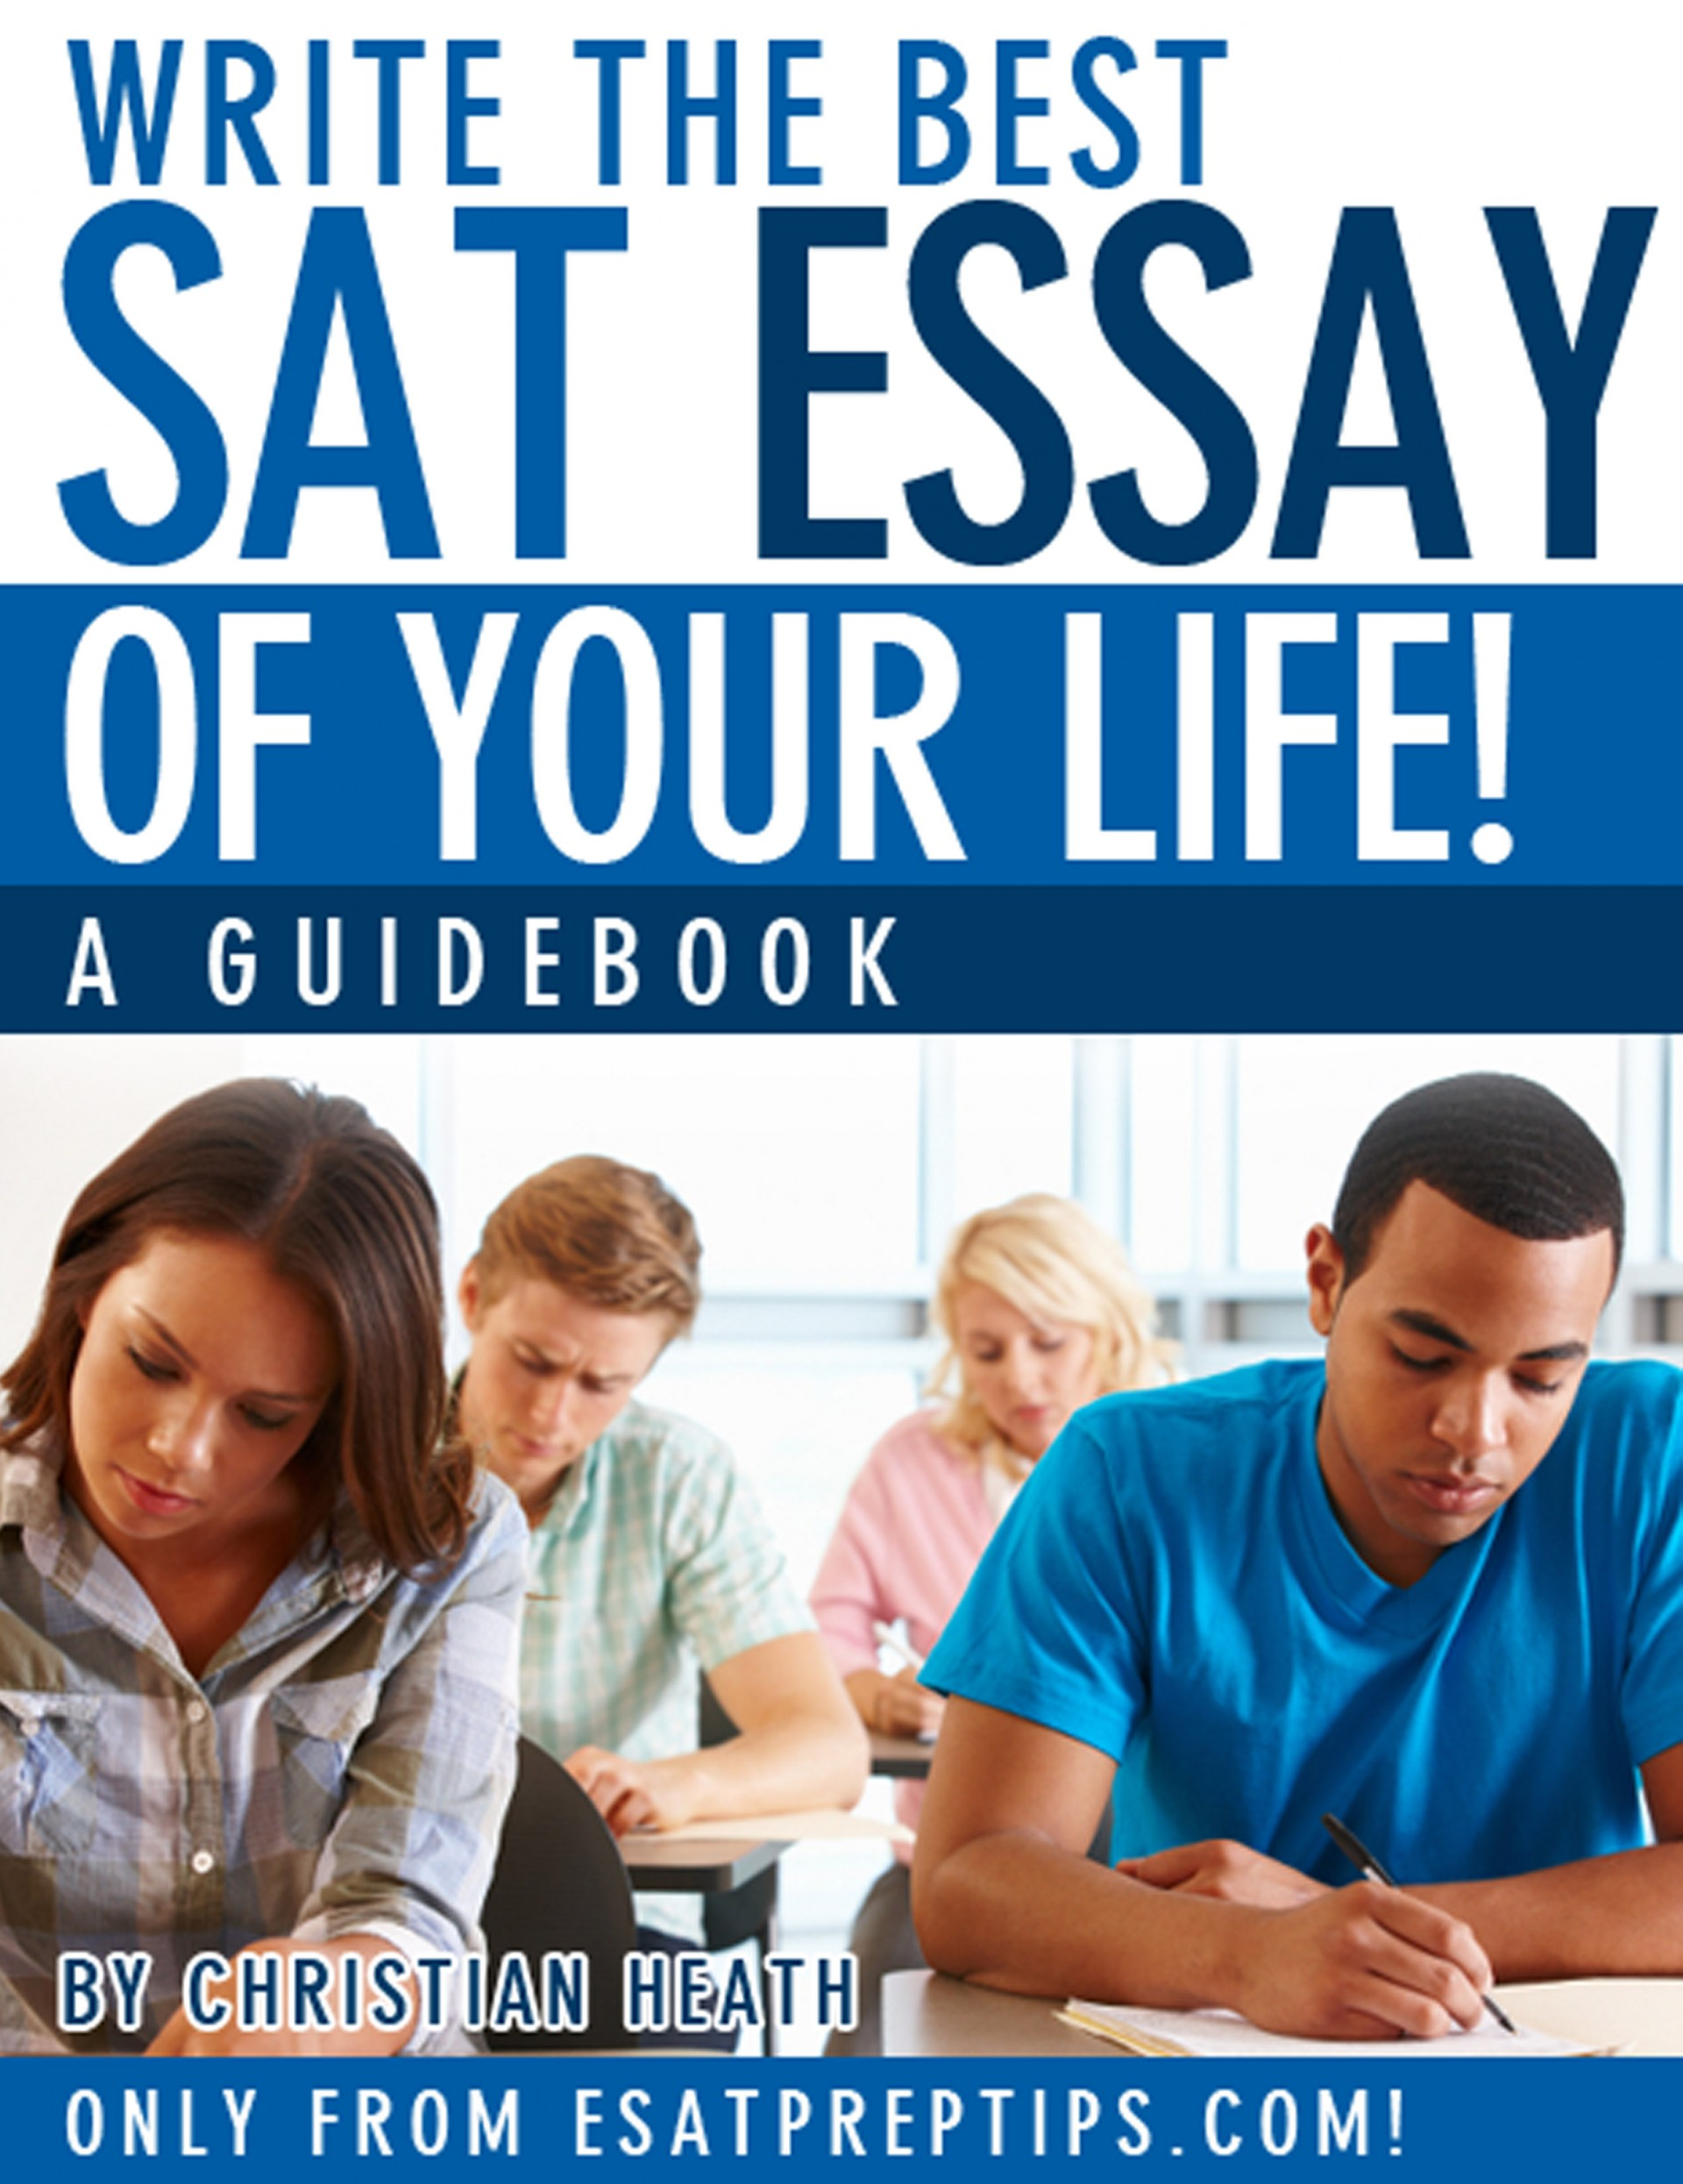 028 Write The Best Sat Essay Of Your Life Writing Tips Fascinating Pdf 1920